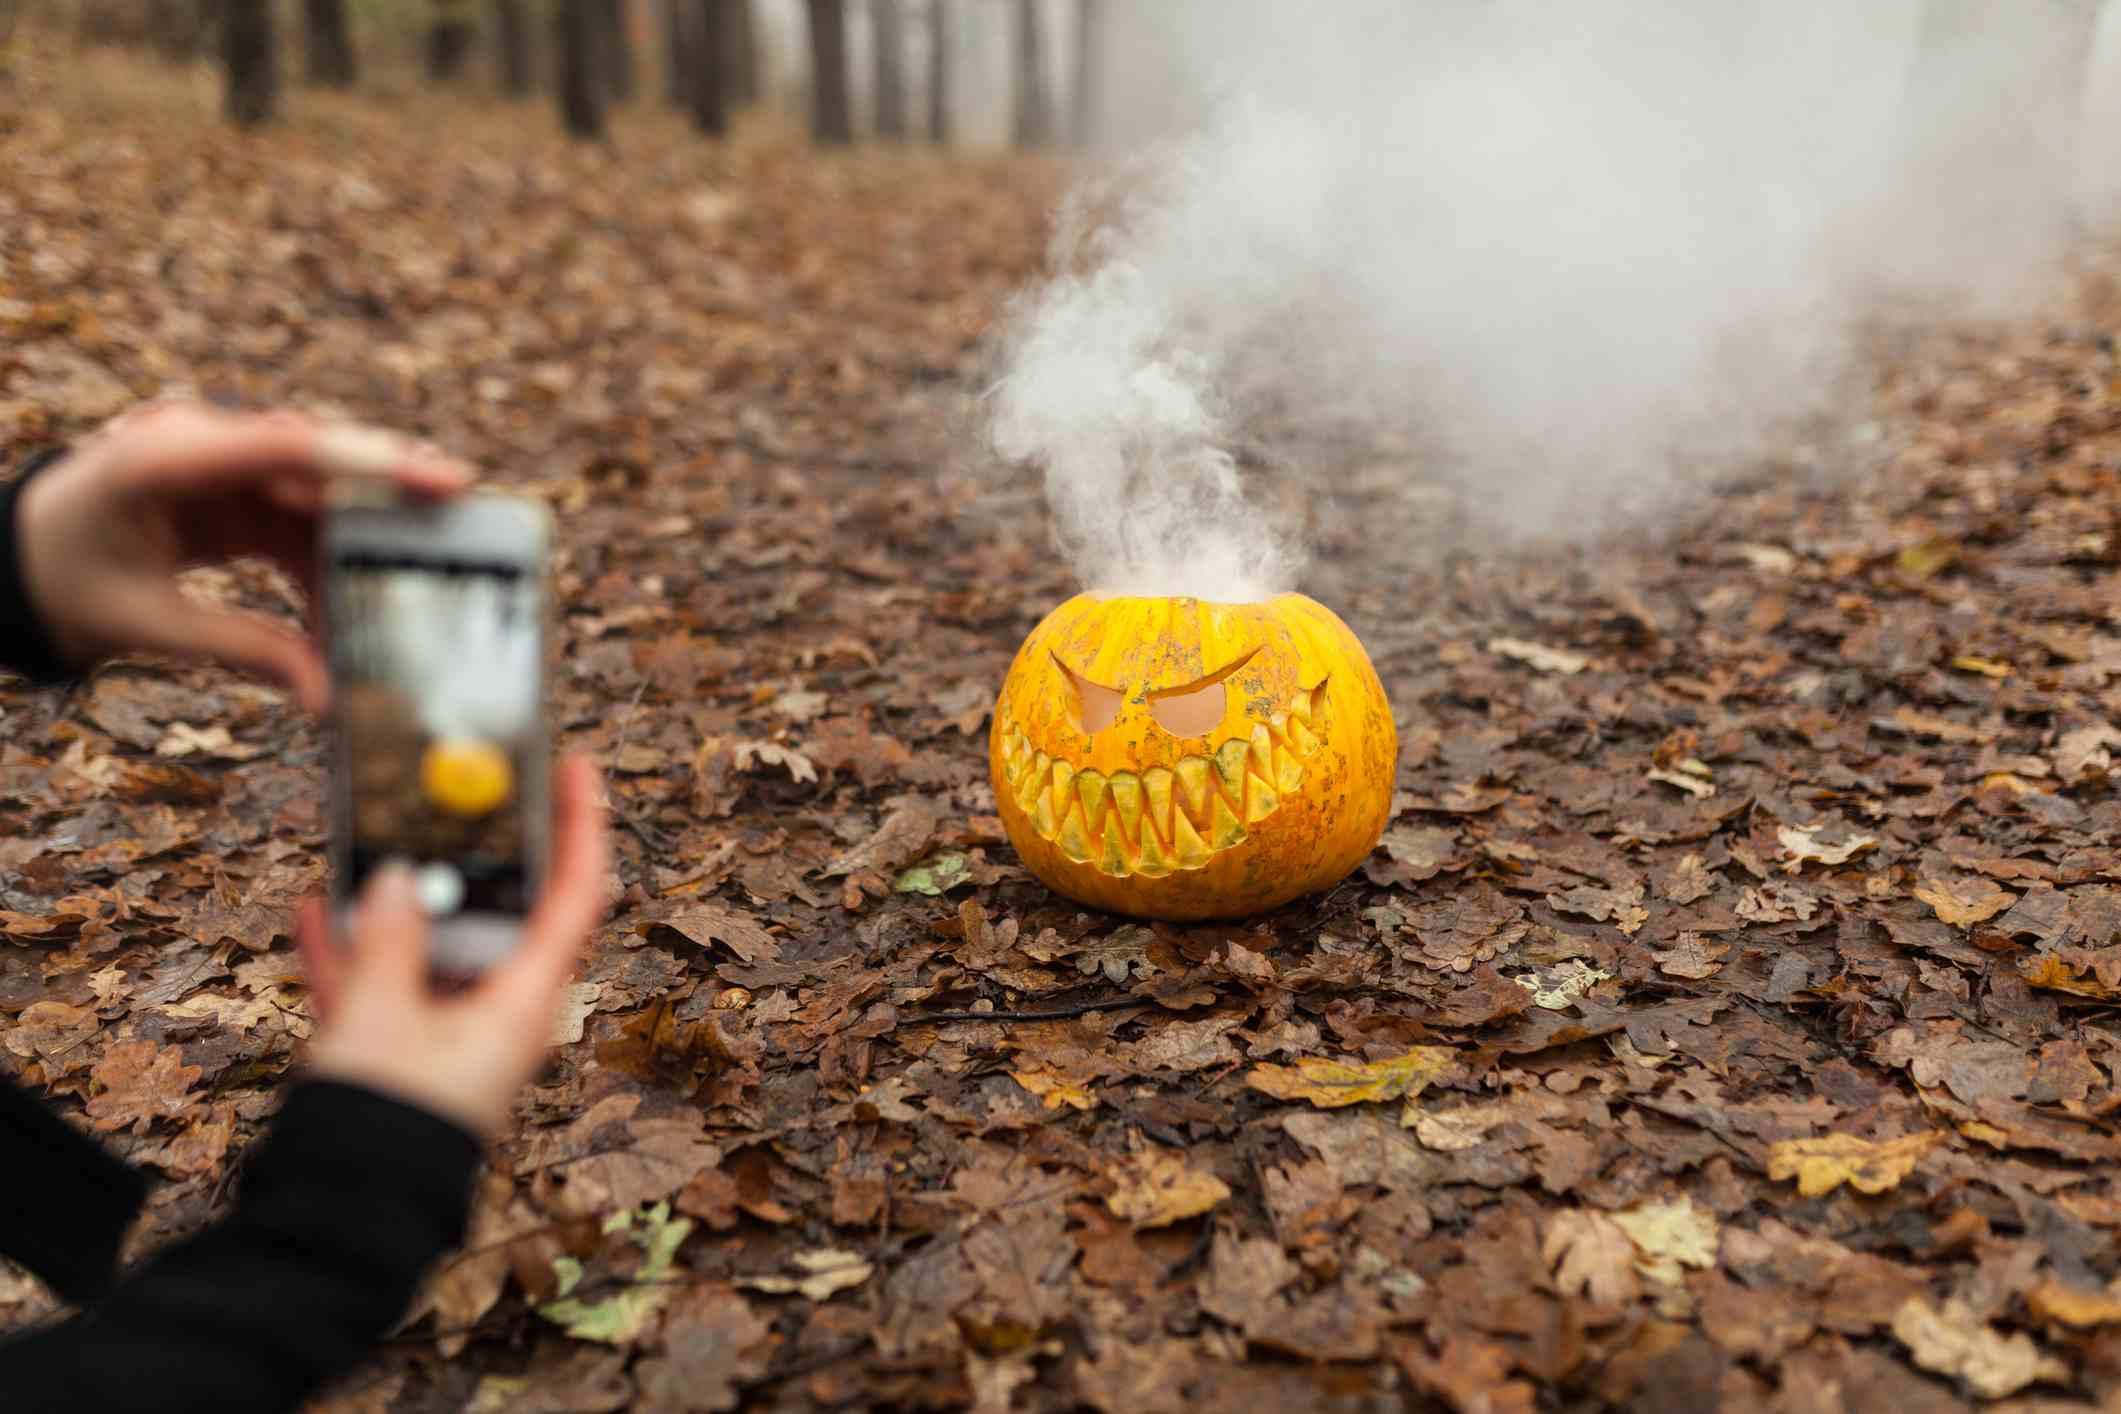 Person taking a photo of a jack o lantern with their smartphone